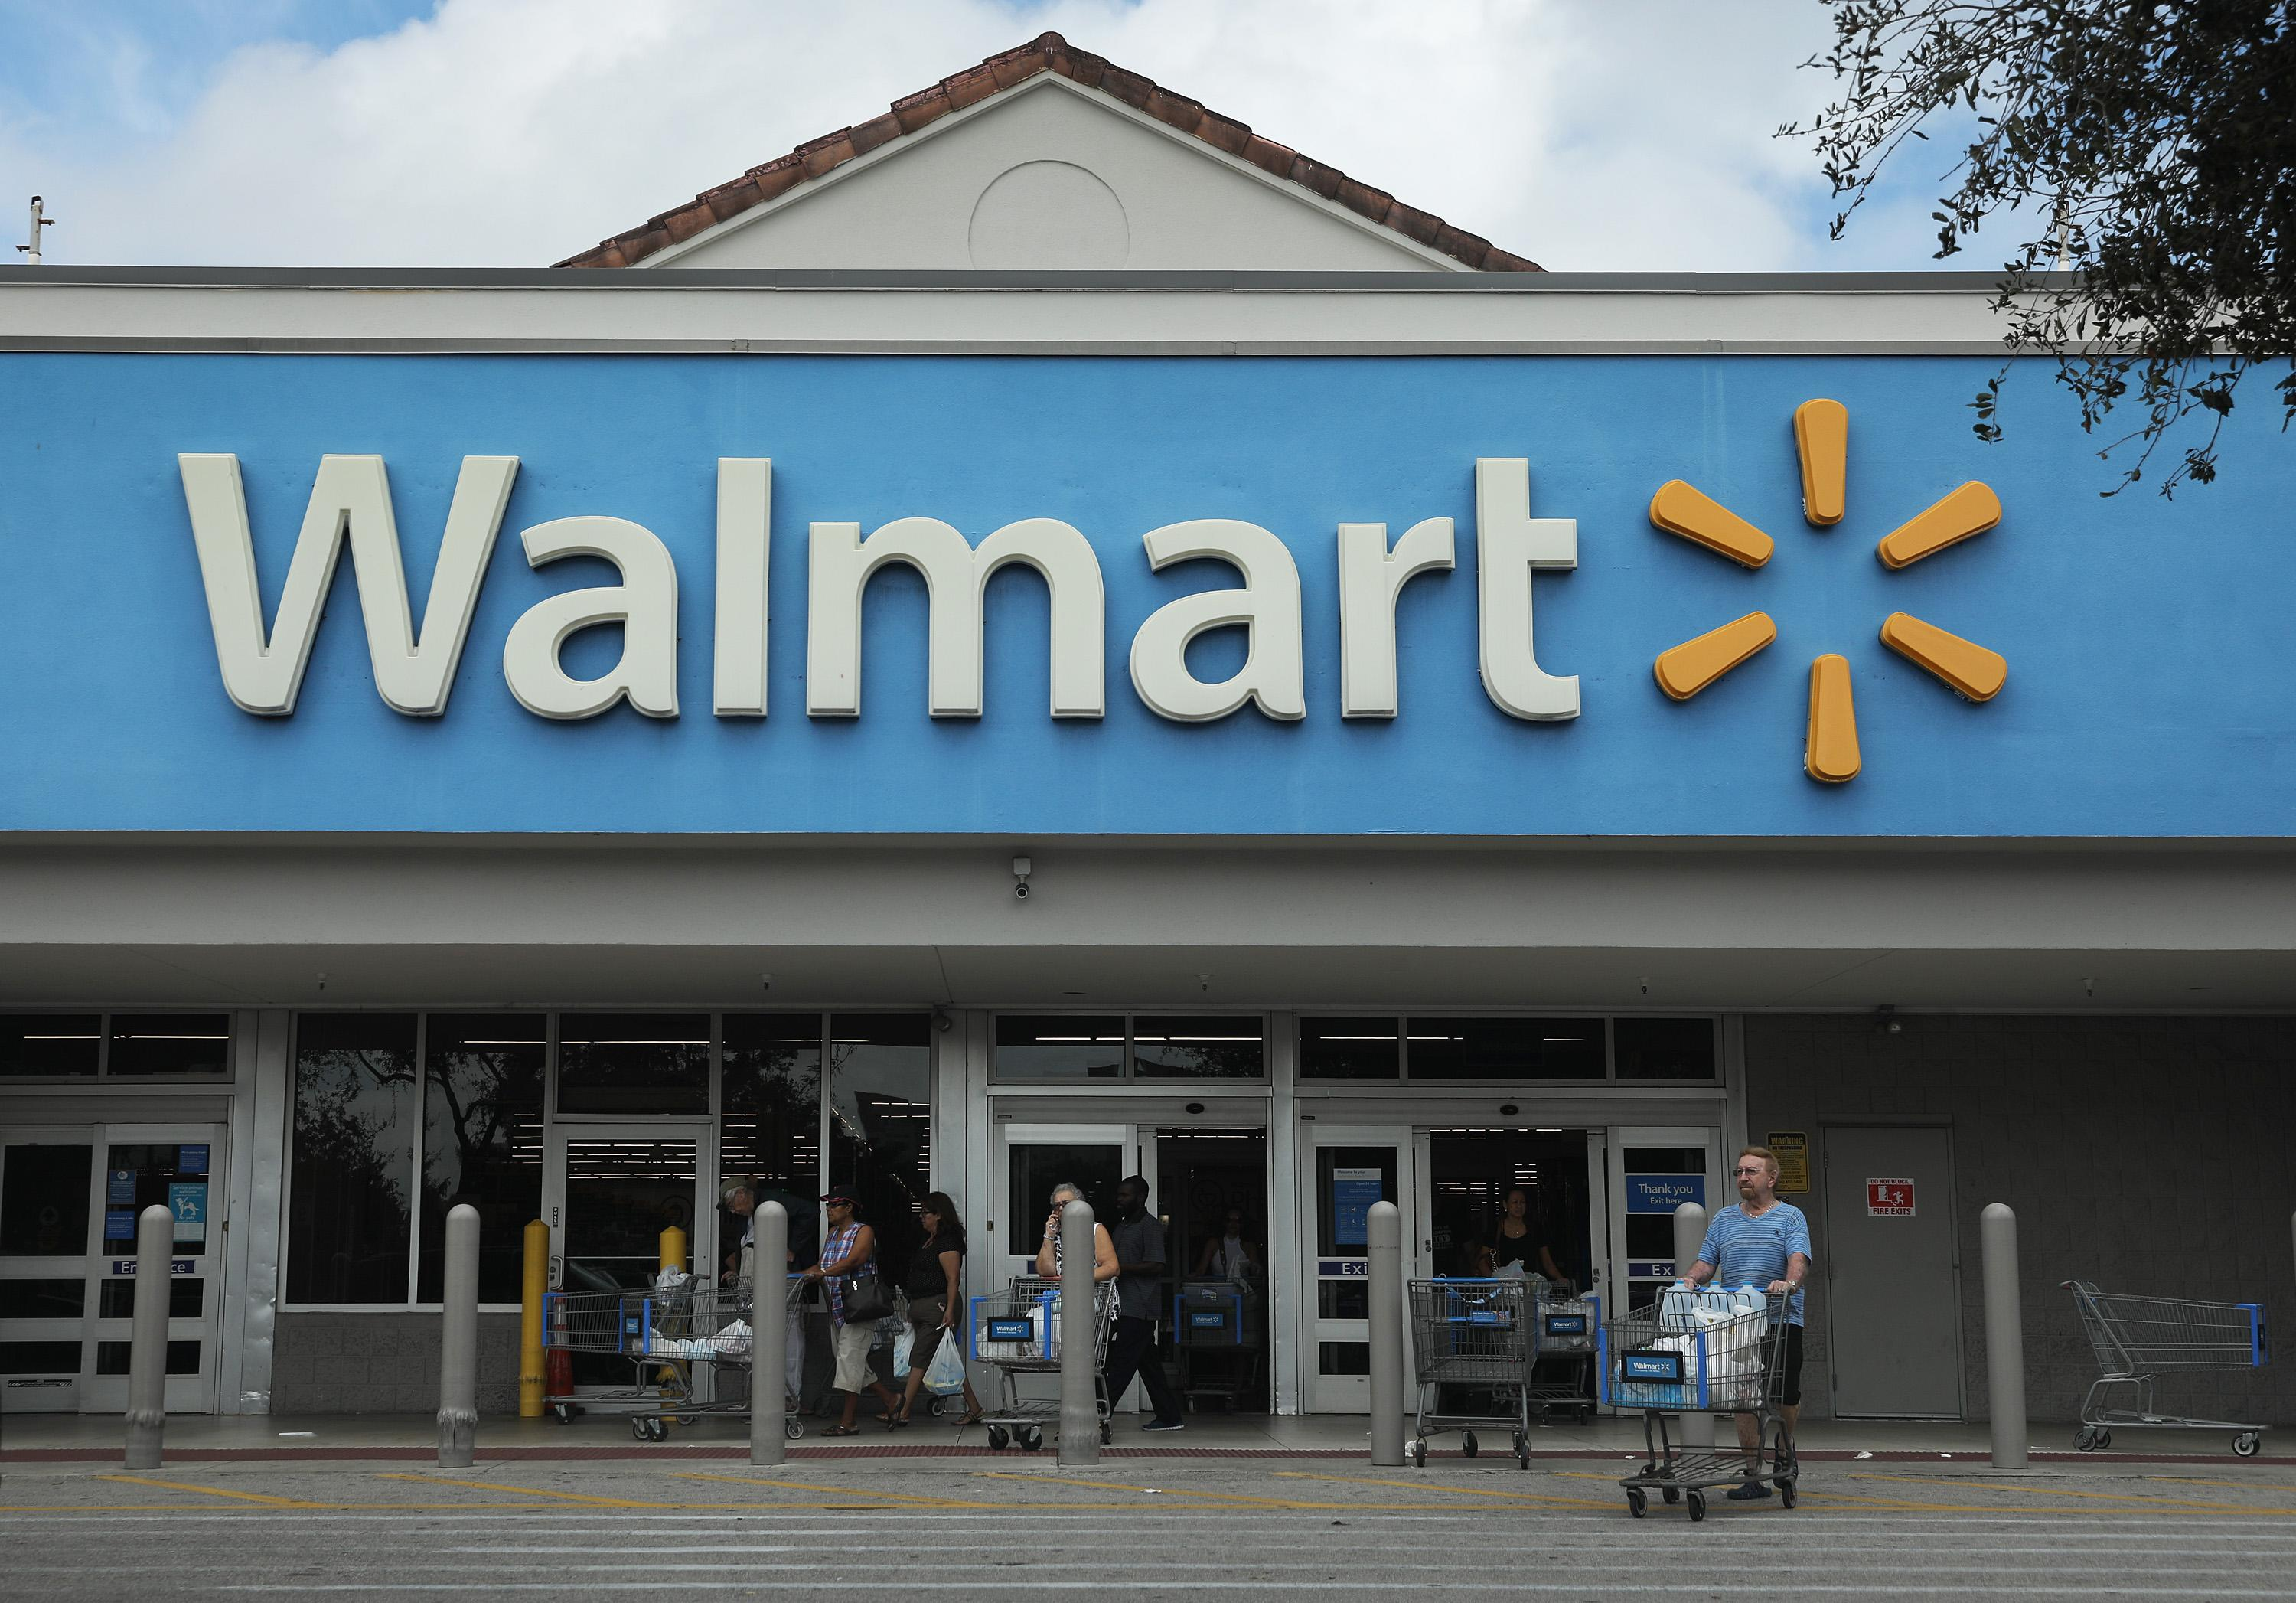 Walmart expands debt-free education benefit to include skilled trades